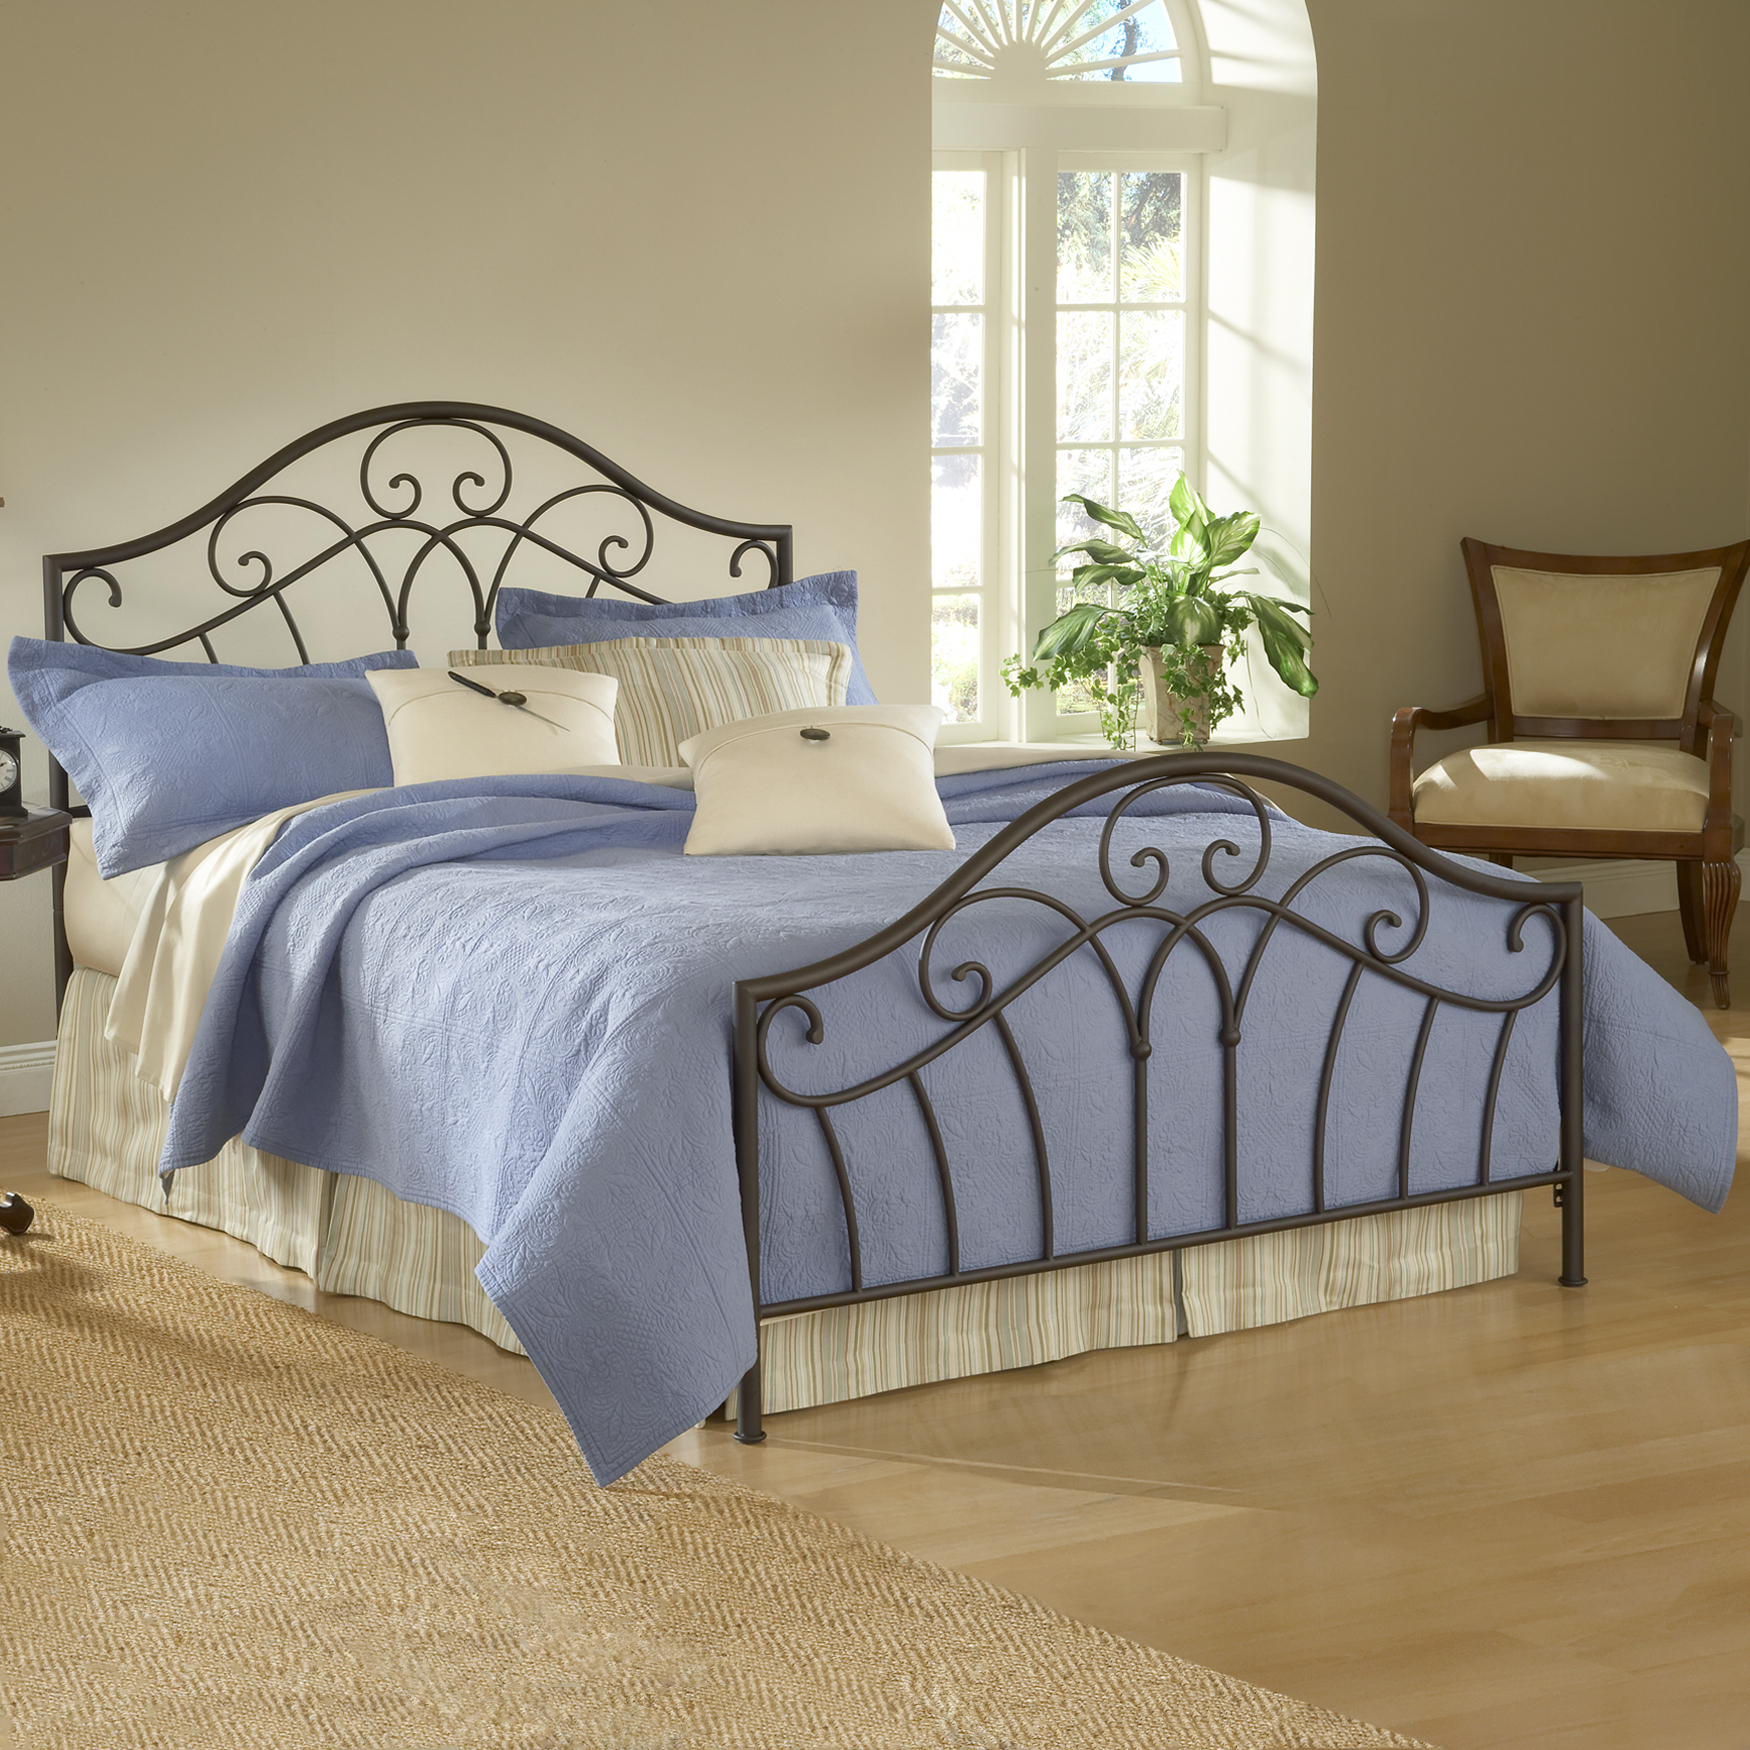 Hillsdale Josephine Bed with Bed Frame,